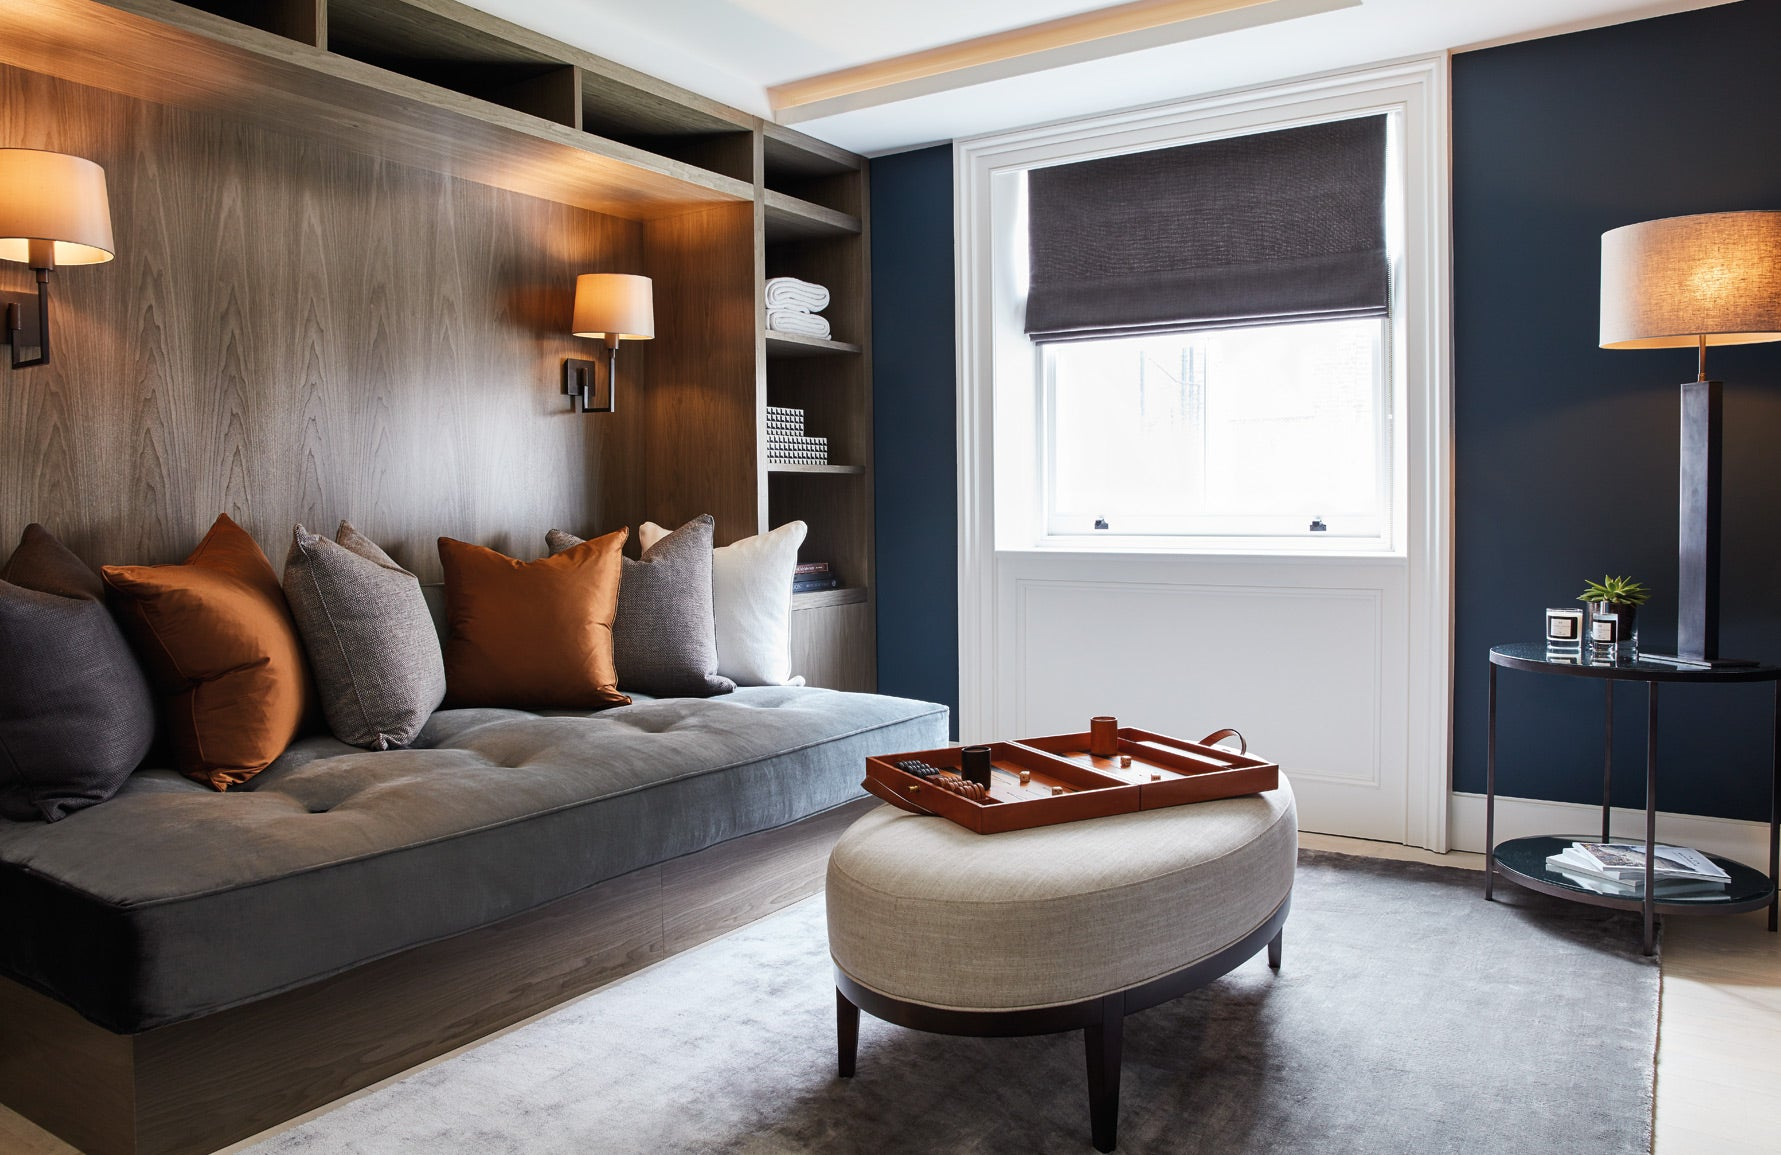 How To Make A Small Room Look Bigger | BradyWilliams | Small Room Ideas | Shop luxury furniture online at LuxDeco.com